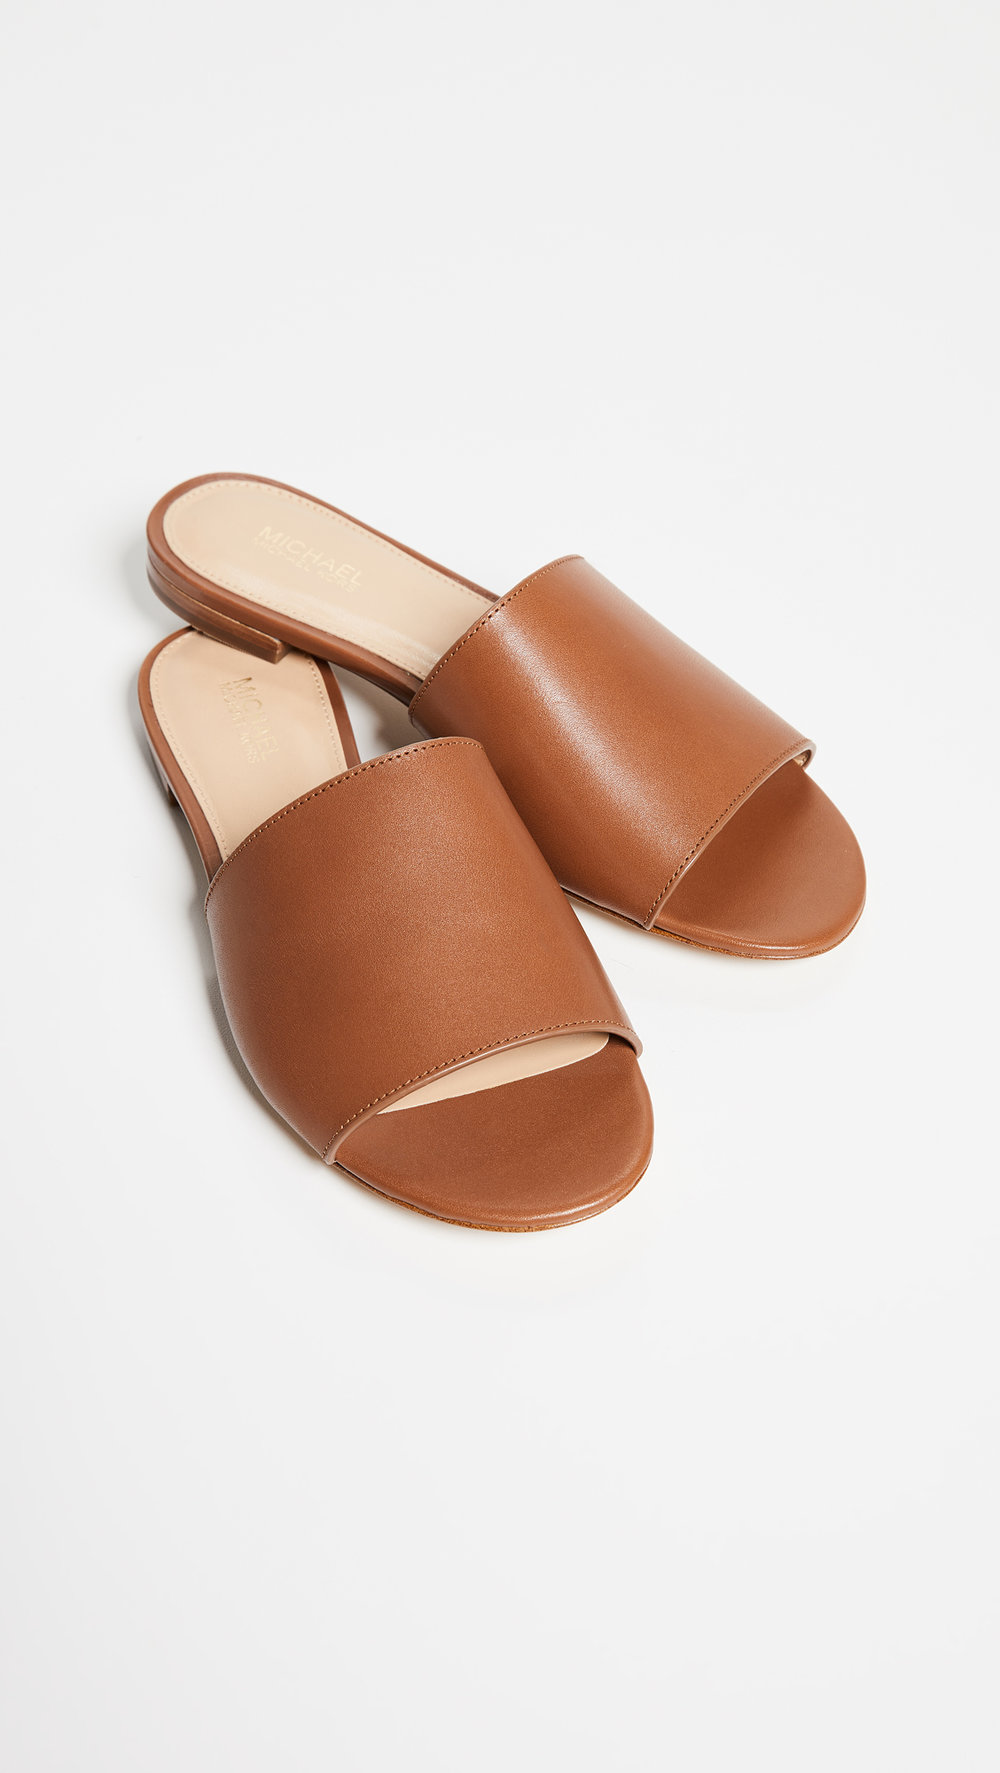 Michael Kors Shelly Slides